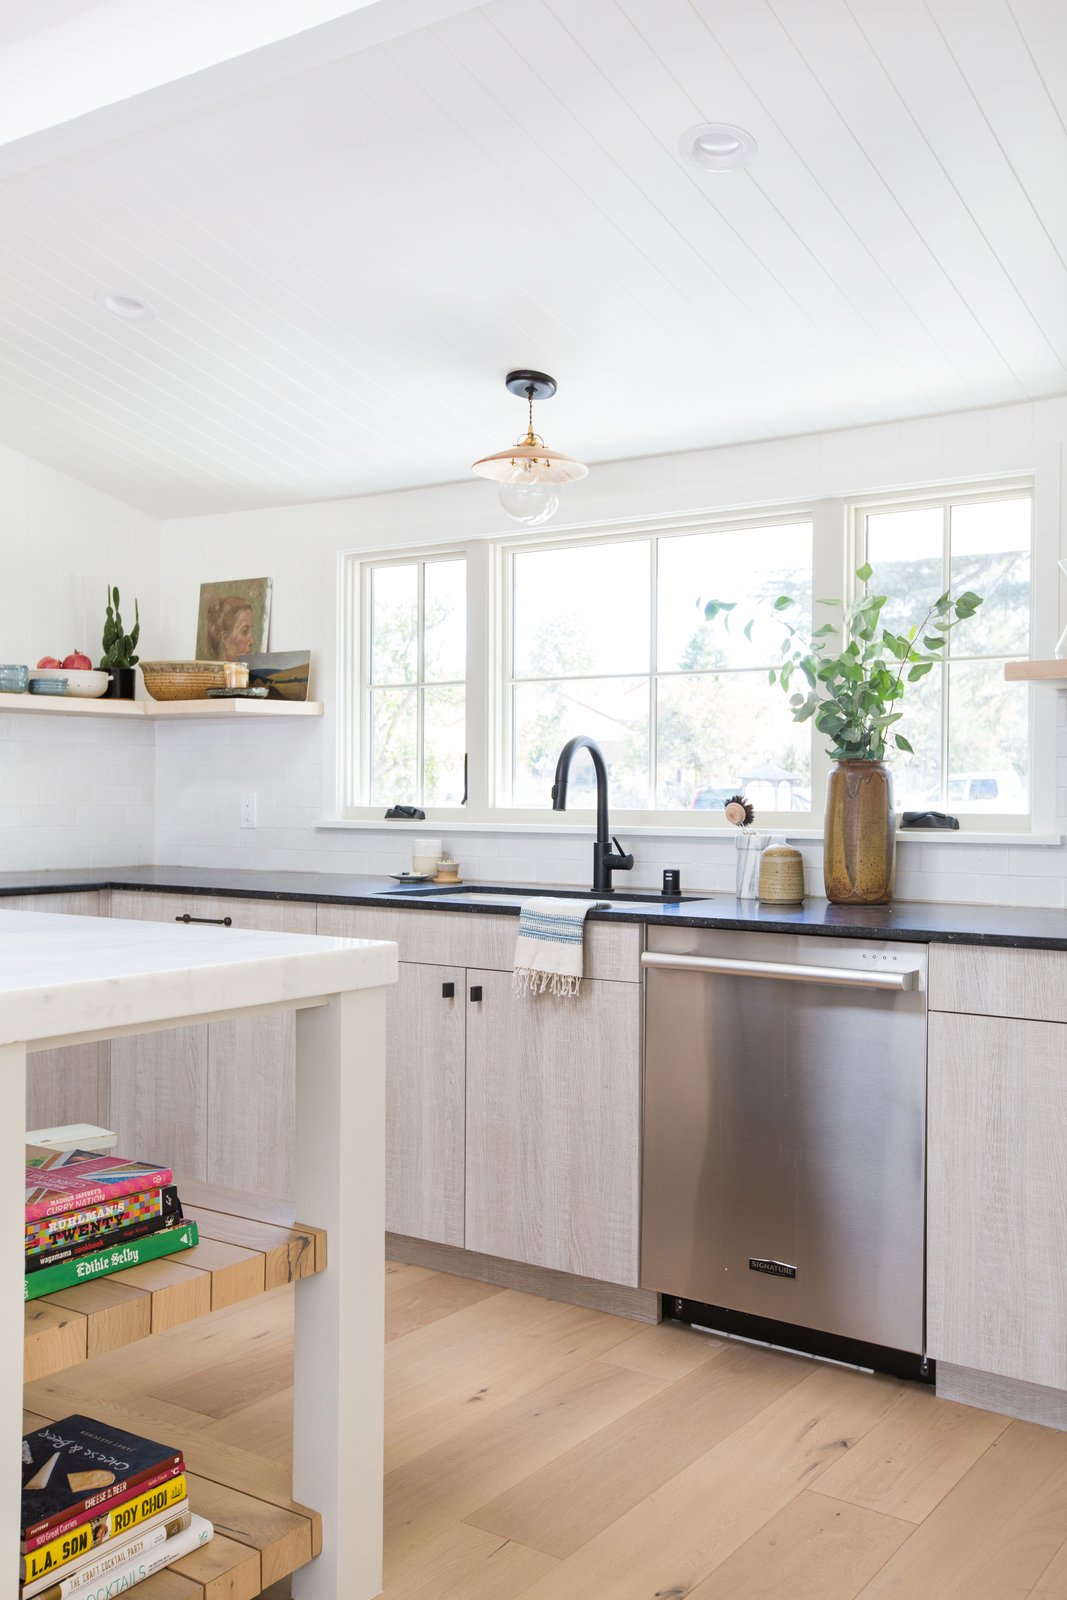 Amber Lewis's chic kitchen features a white undermount sink and a matte black faucet.